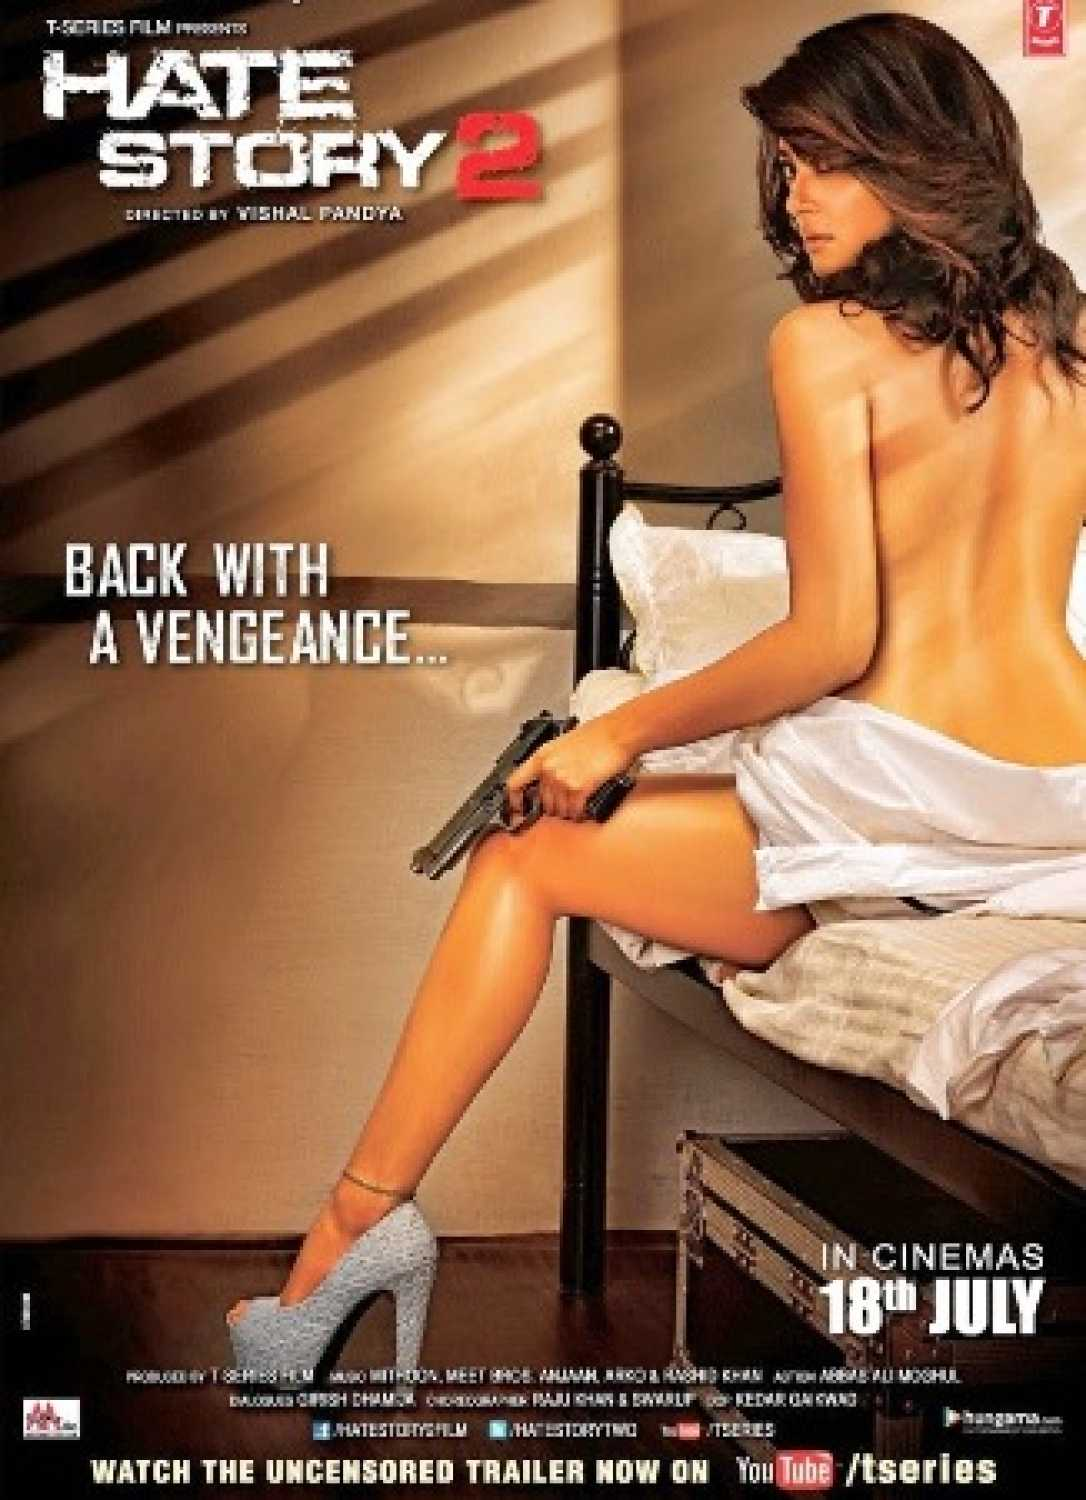 Hate Story 2 (2014) - Review, Star Cast, News, Photos | Cinestaan